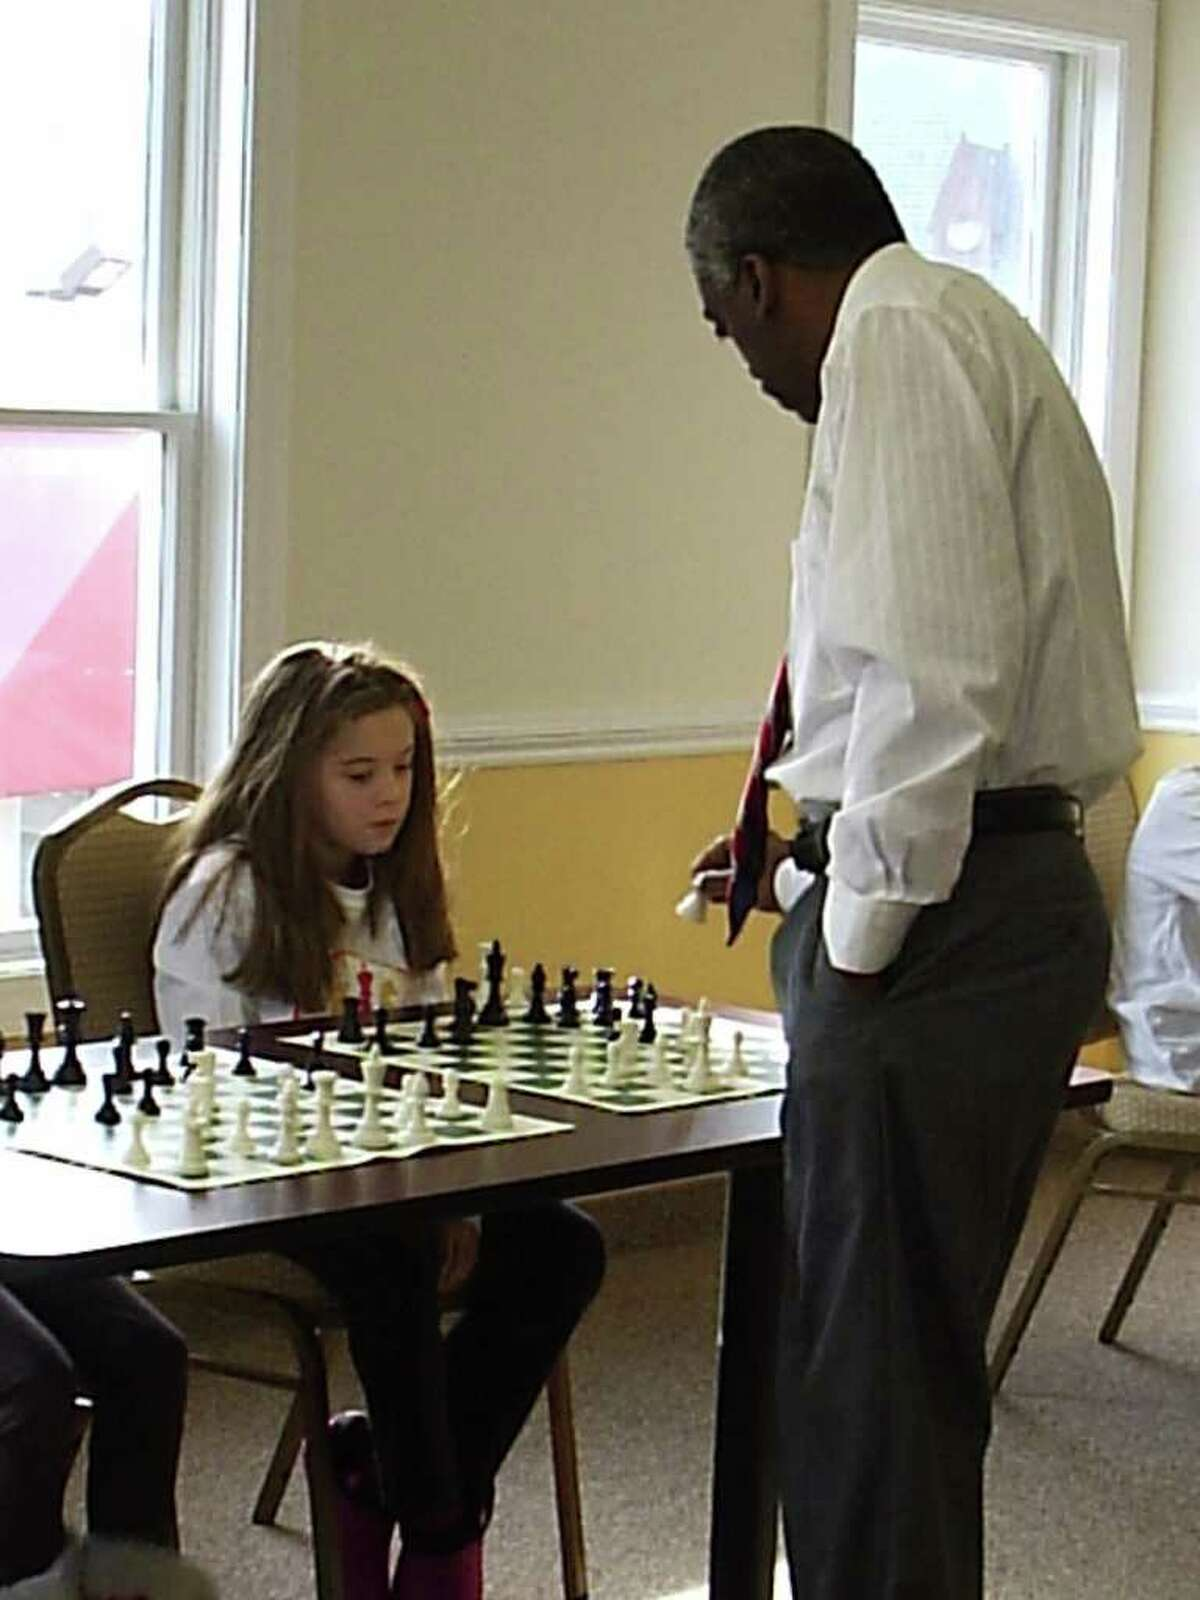 Melvin Patrick plays a game of chess with a child at the club.